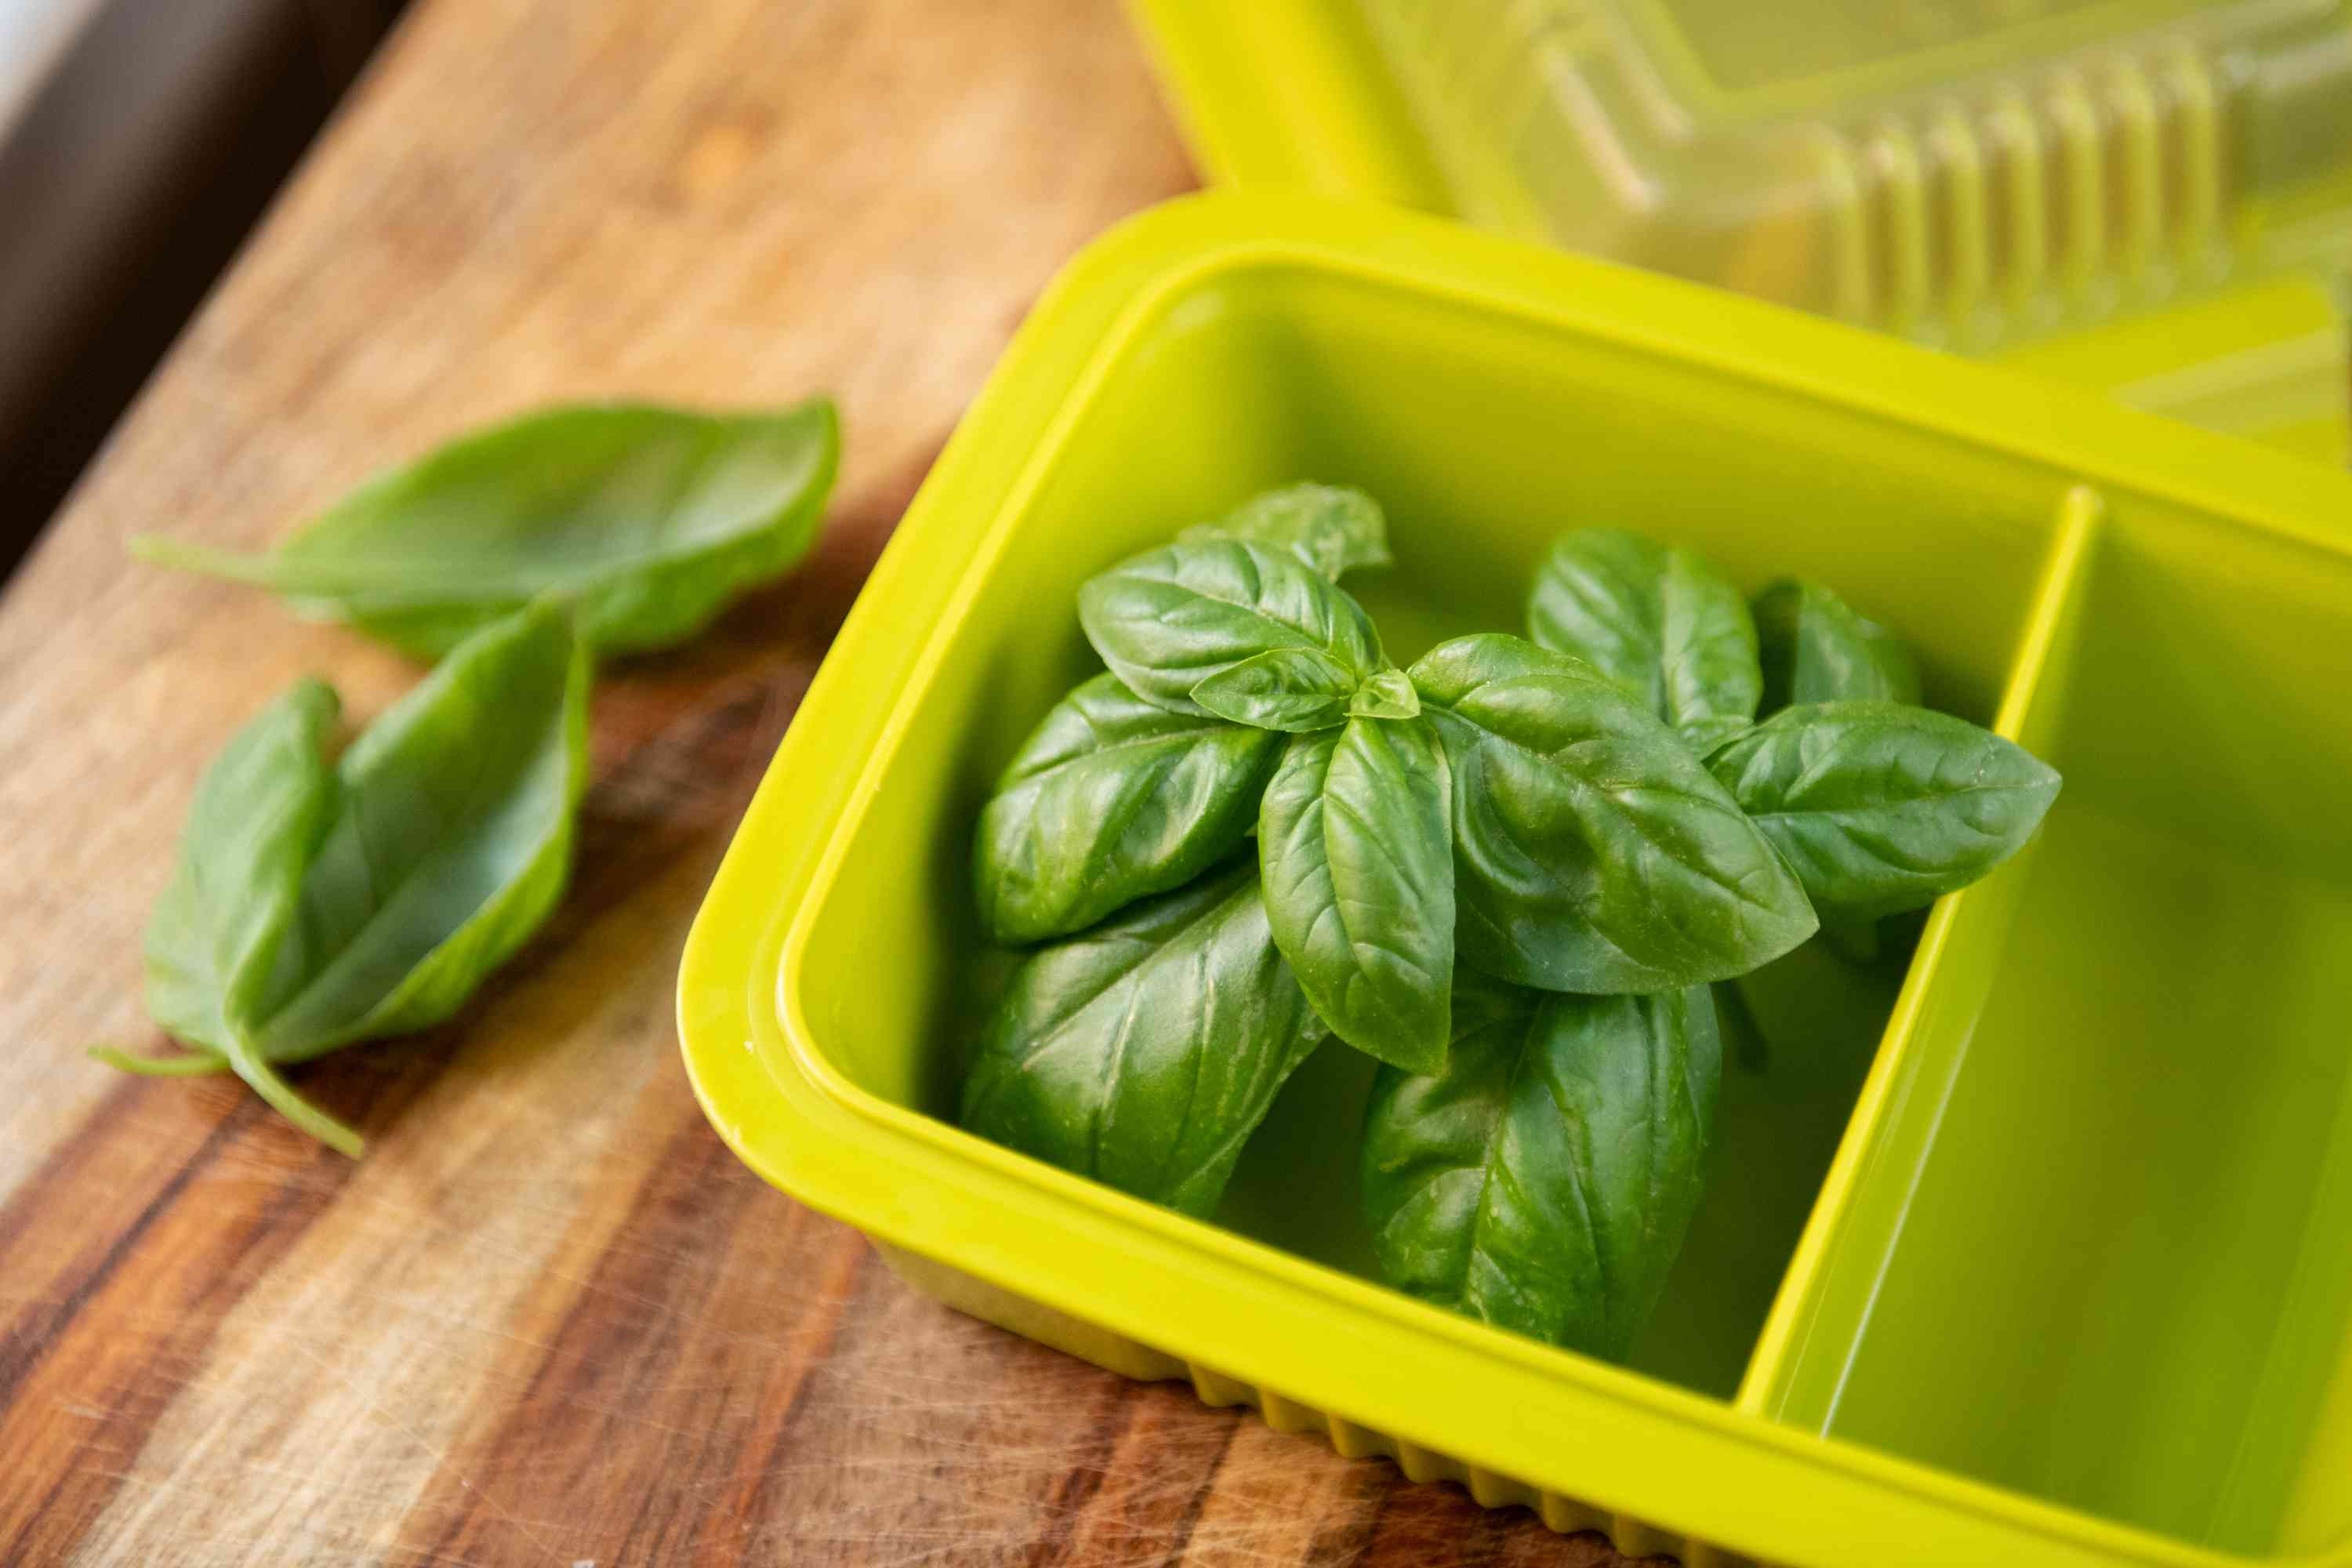 harvesting and freezing basil in ice cube trays